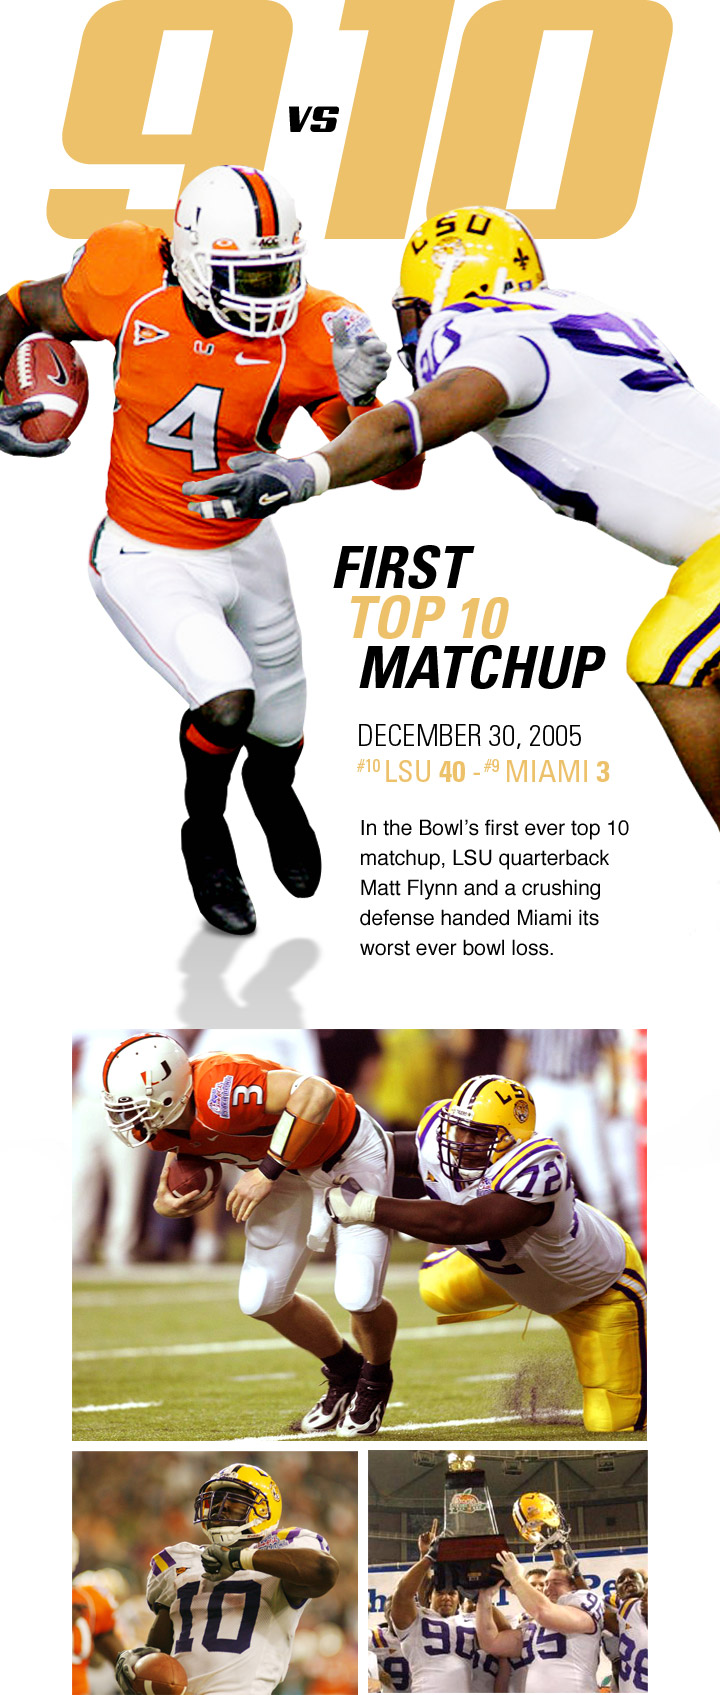 9 vs 10. First Top Ten Match Up. December 30th 2005. LSU 40 - Miami 3